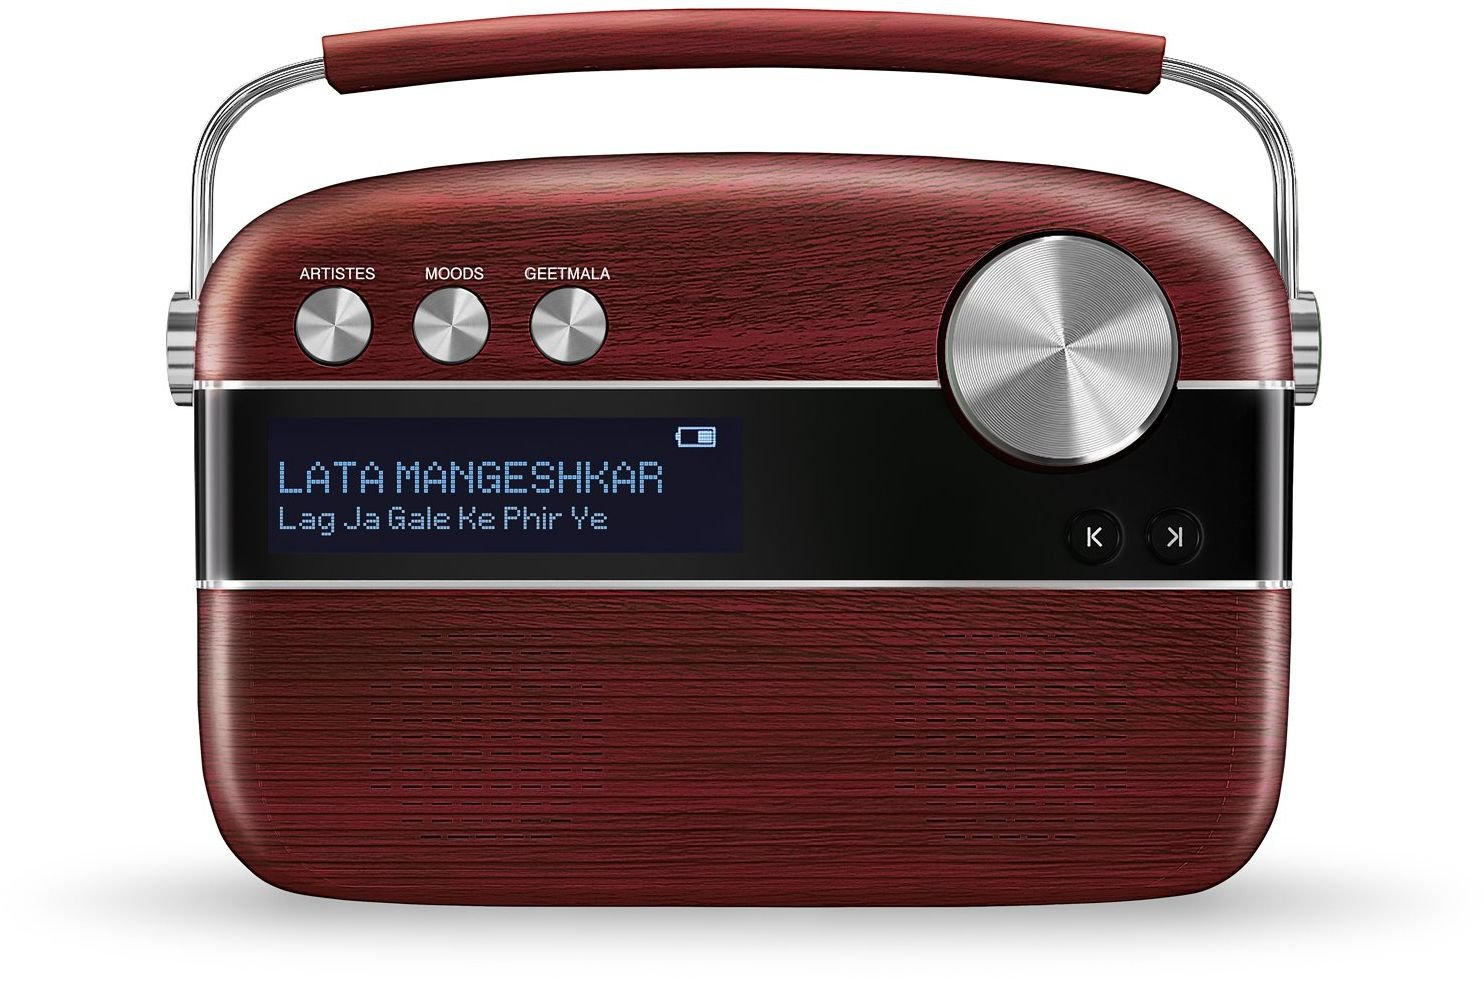 Saregama Carvaan Hindi - Portable Music Player with 5000 Preloaded Songs, FM/BT/AUX (Cherrywood Red)